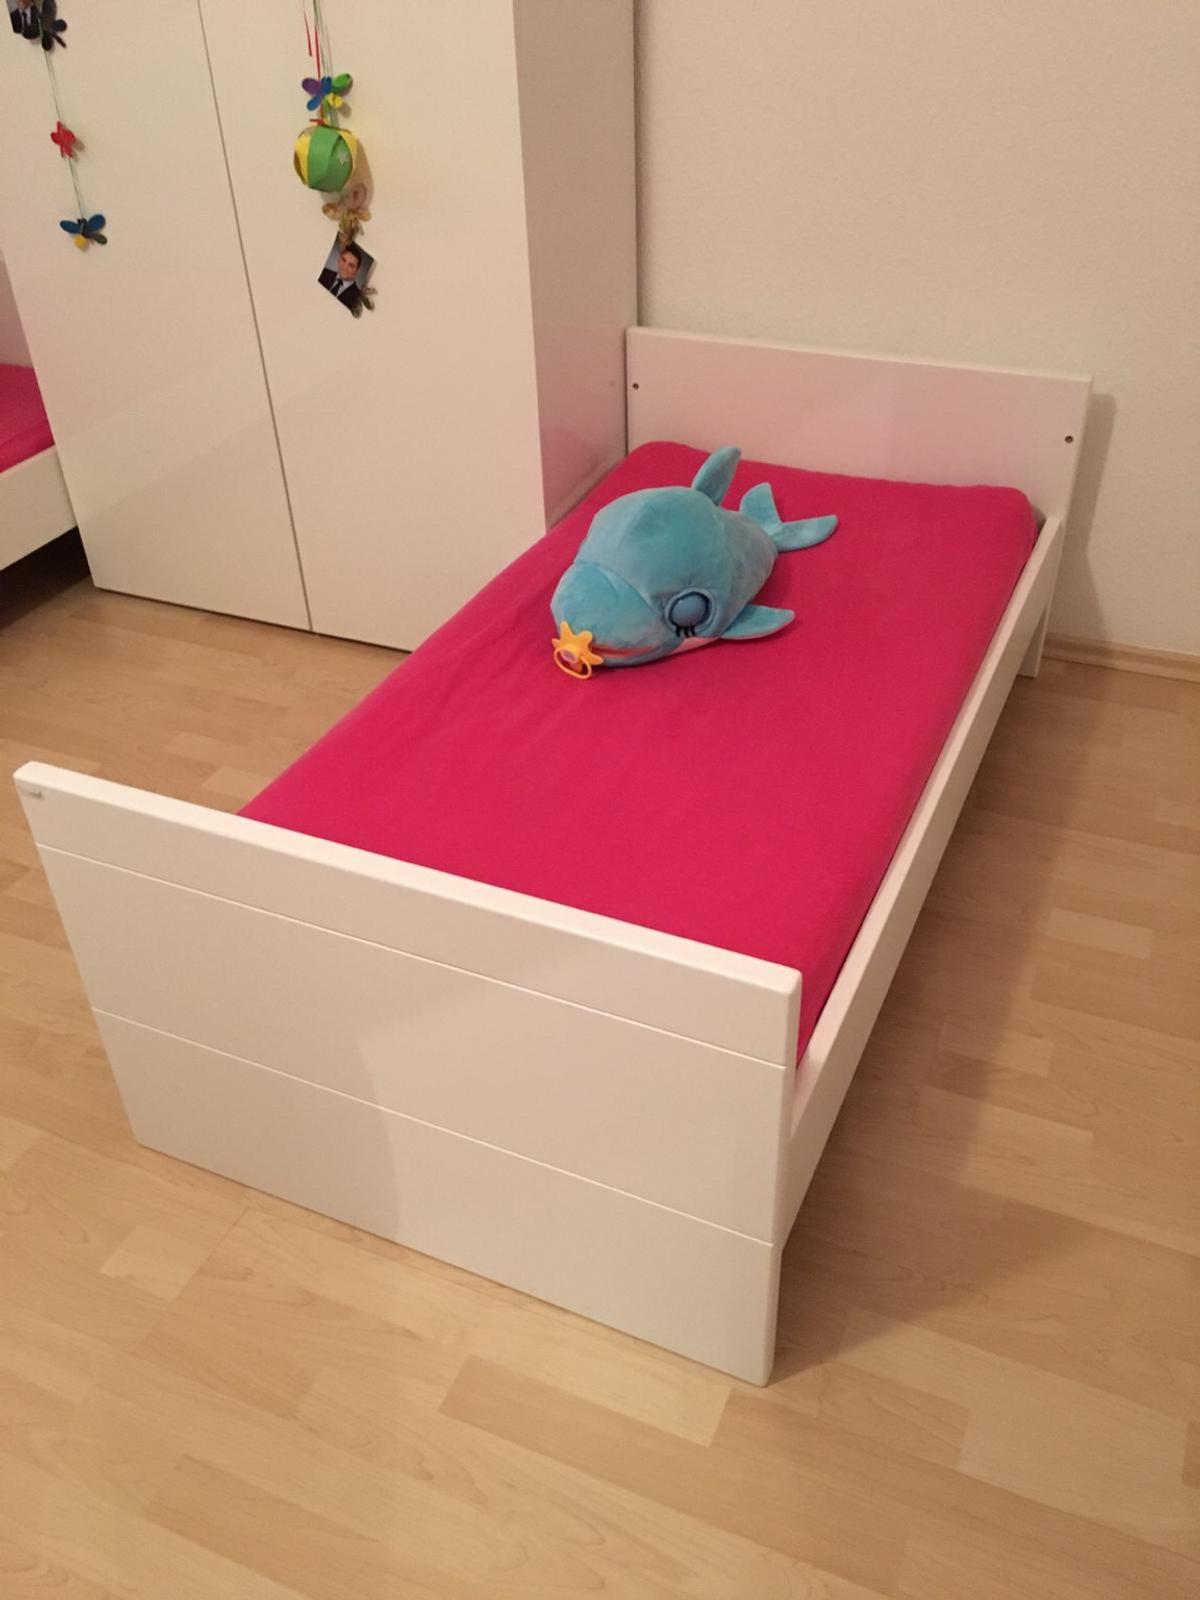 Mini Meise Mini Meise Kinderbett 70*140 In 63067 Offenbach Am Main For €64.99 For Sale | Shpock